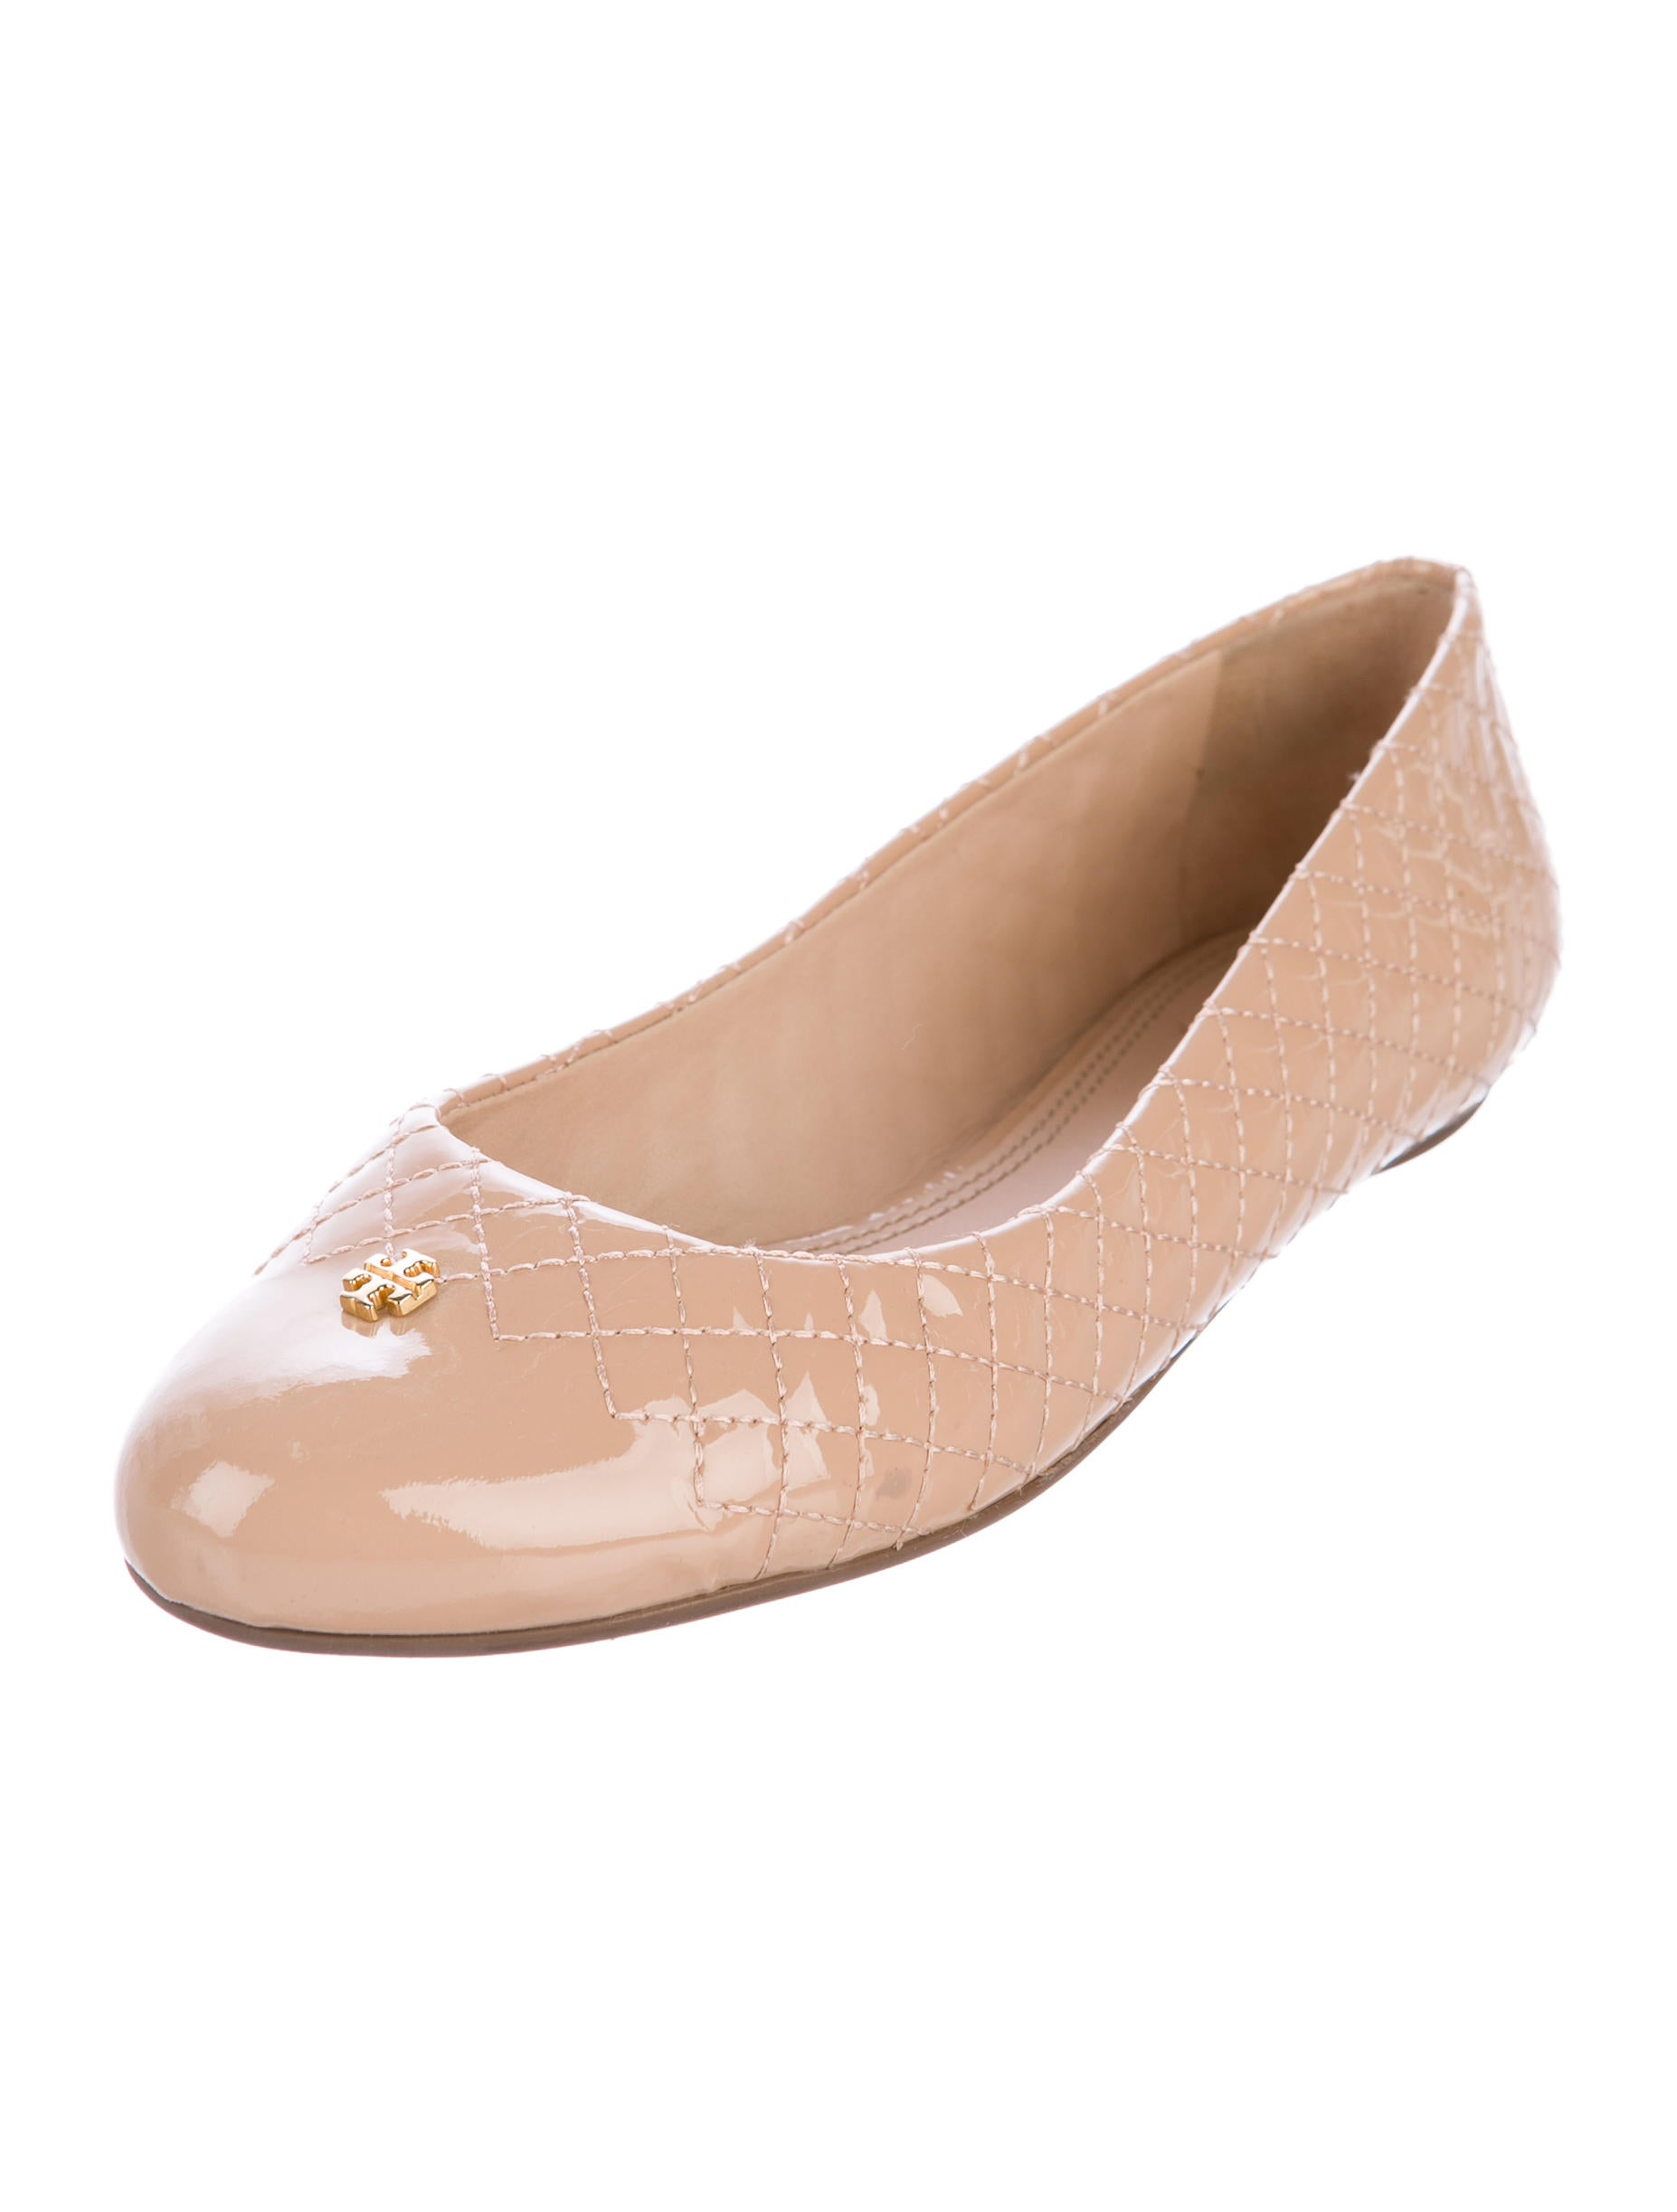 tory burch quilted ballet flats shoes wto113232 the realreal. Black Bedroom Furniture Sets. Home Design Ideas